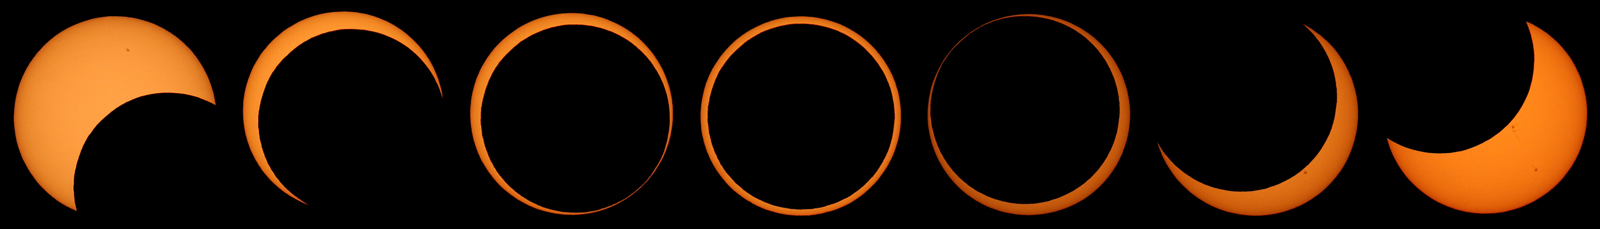 Annular Eclipse Sequence 2012